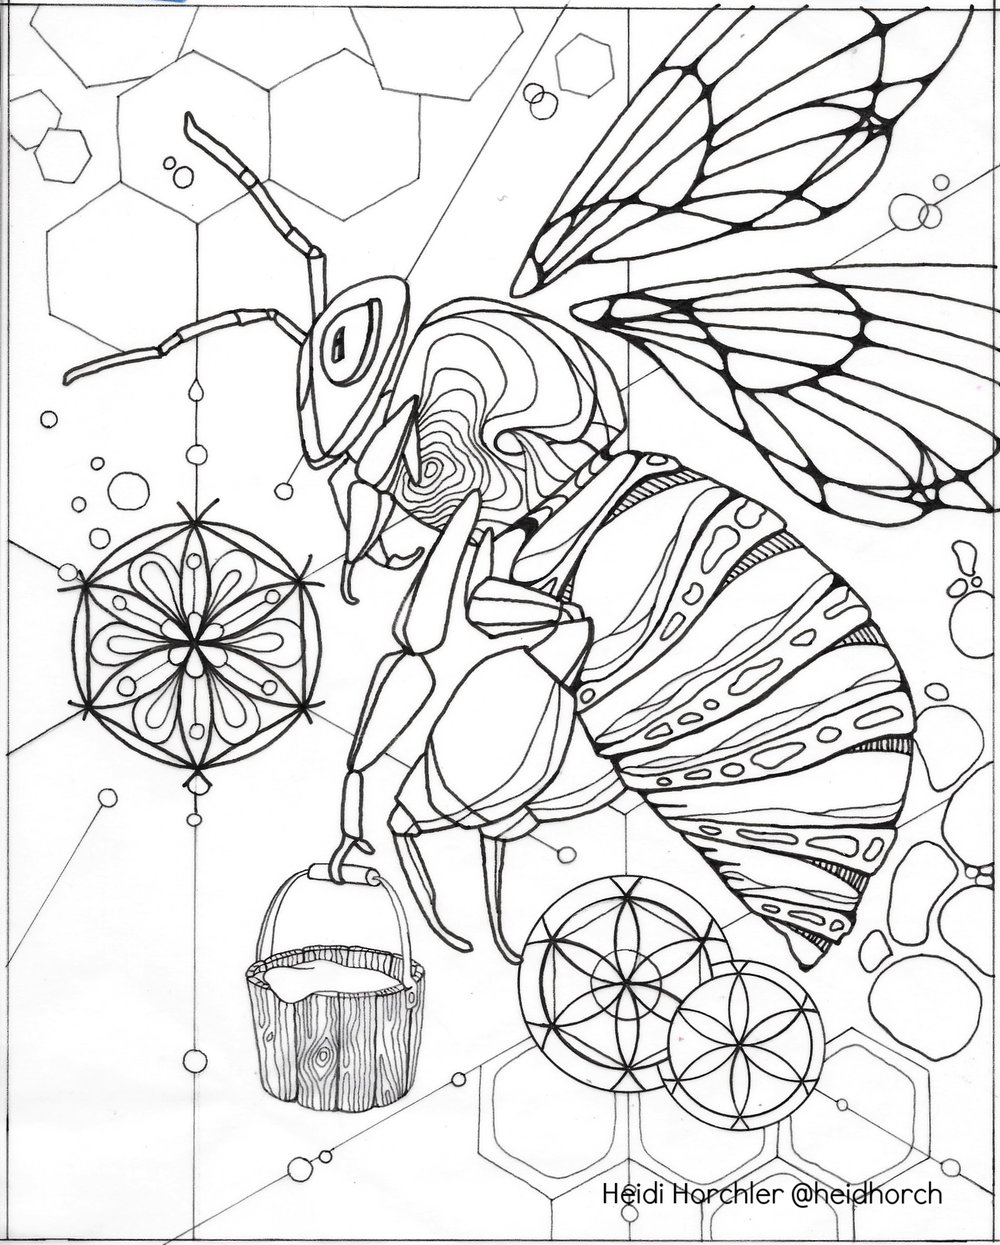 Bee - Daydream Odyssey coloring page